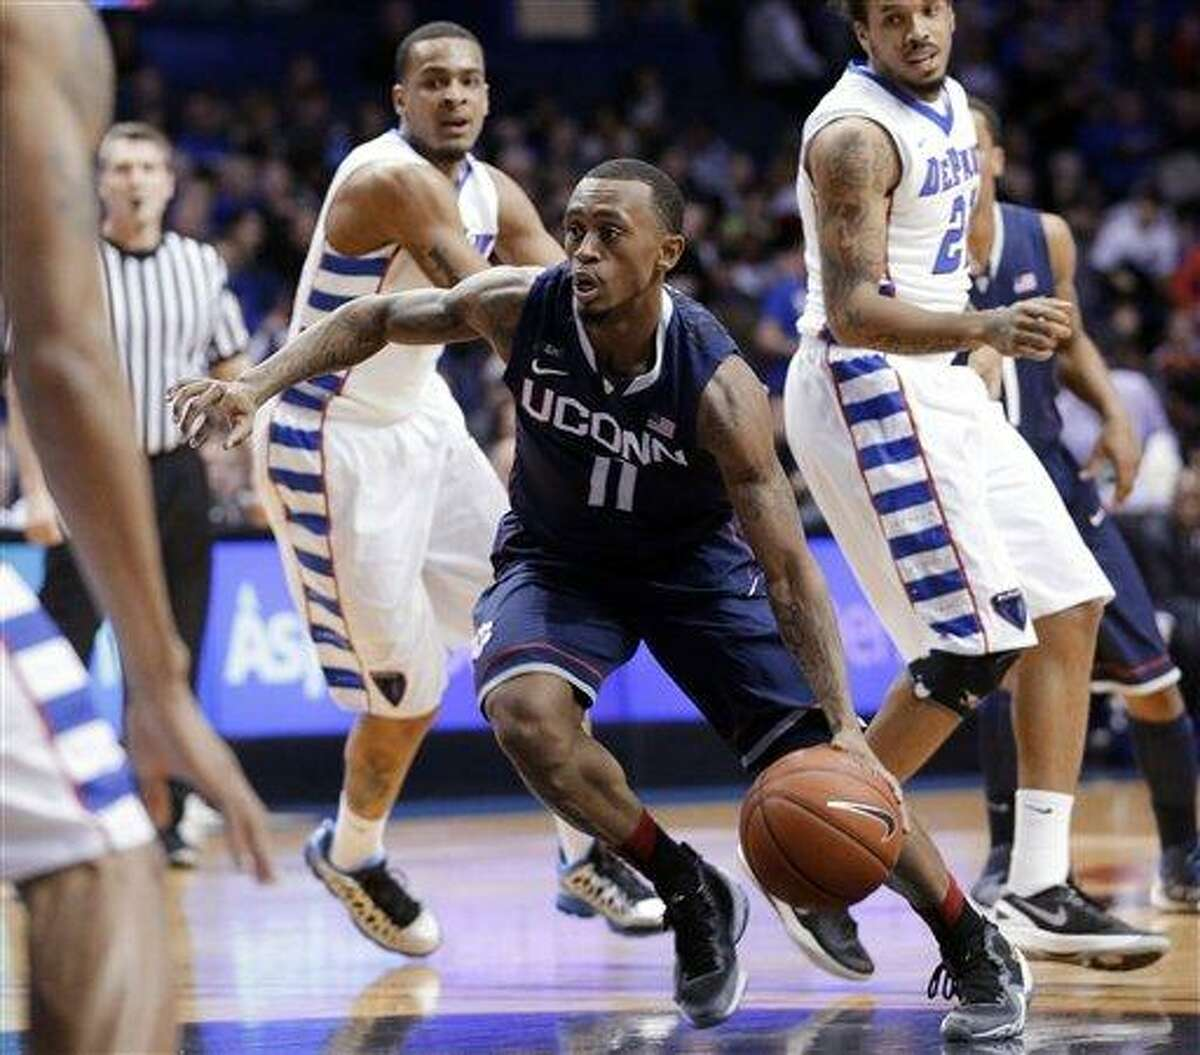 Connecticut guard Ryan Boatright (11) drives to the basket during the first half of an NCAA college basketball game against DePaul in Rosemont, Ill., on Saturday, Feb. 23, 2013. (AP Photo/Nam Y. Huh)